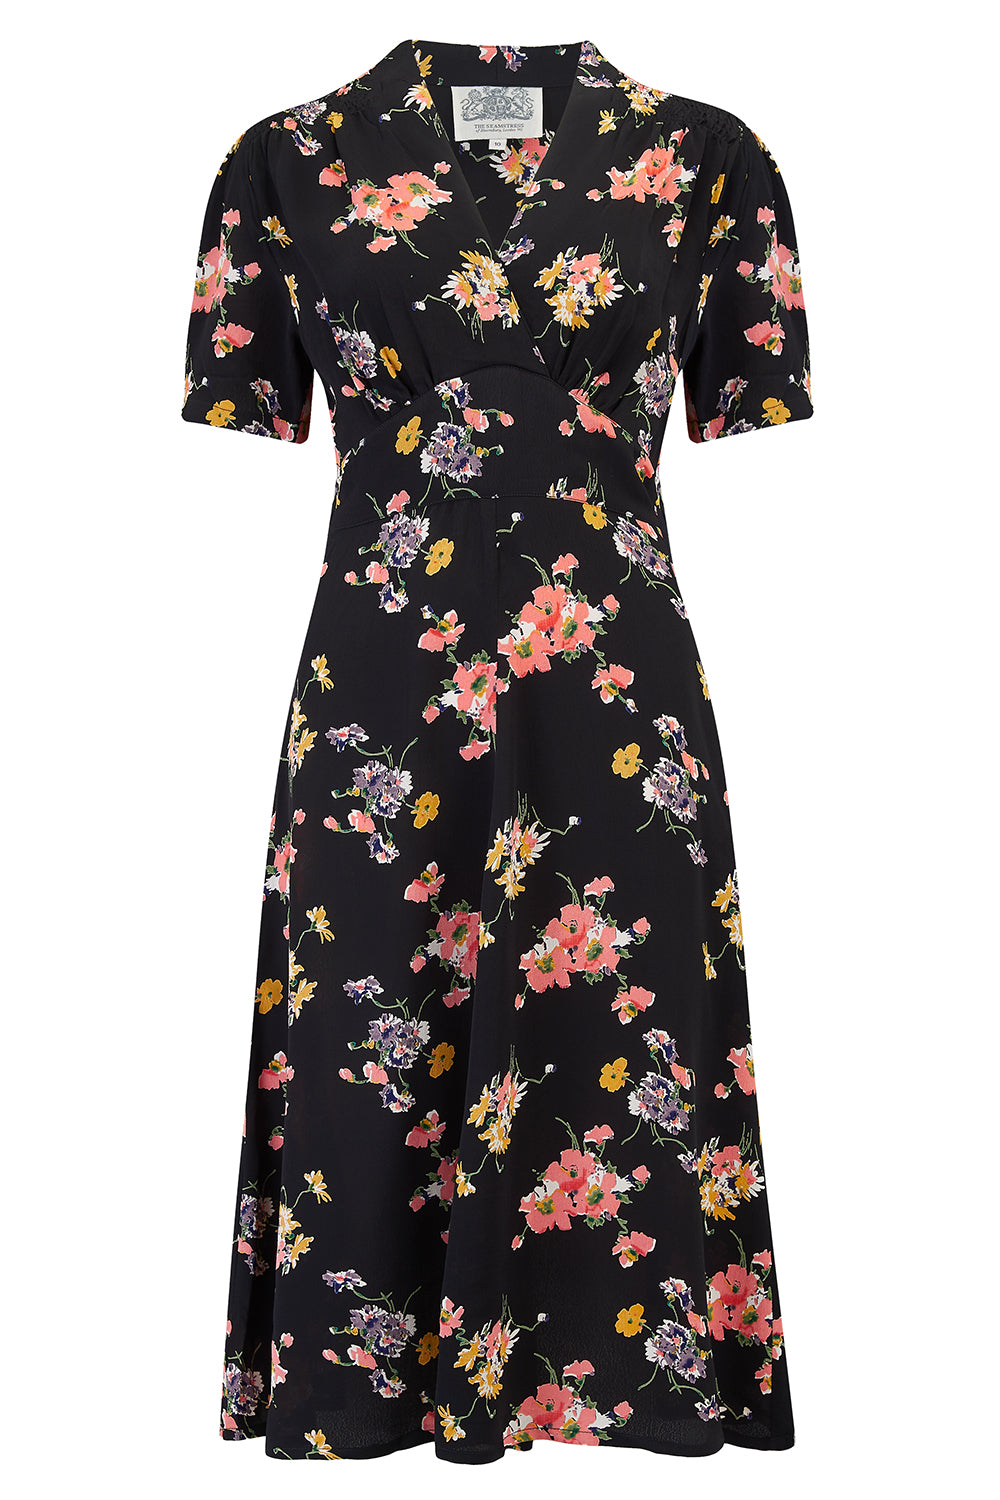 """Dolores"" Swing Dress in Mayflower, A Classic 1940s Inspired Vintage Style"